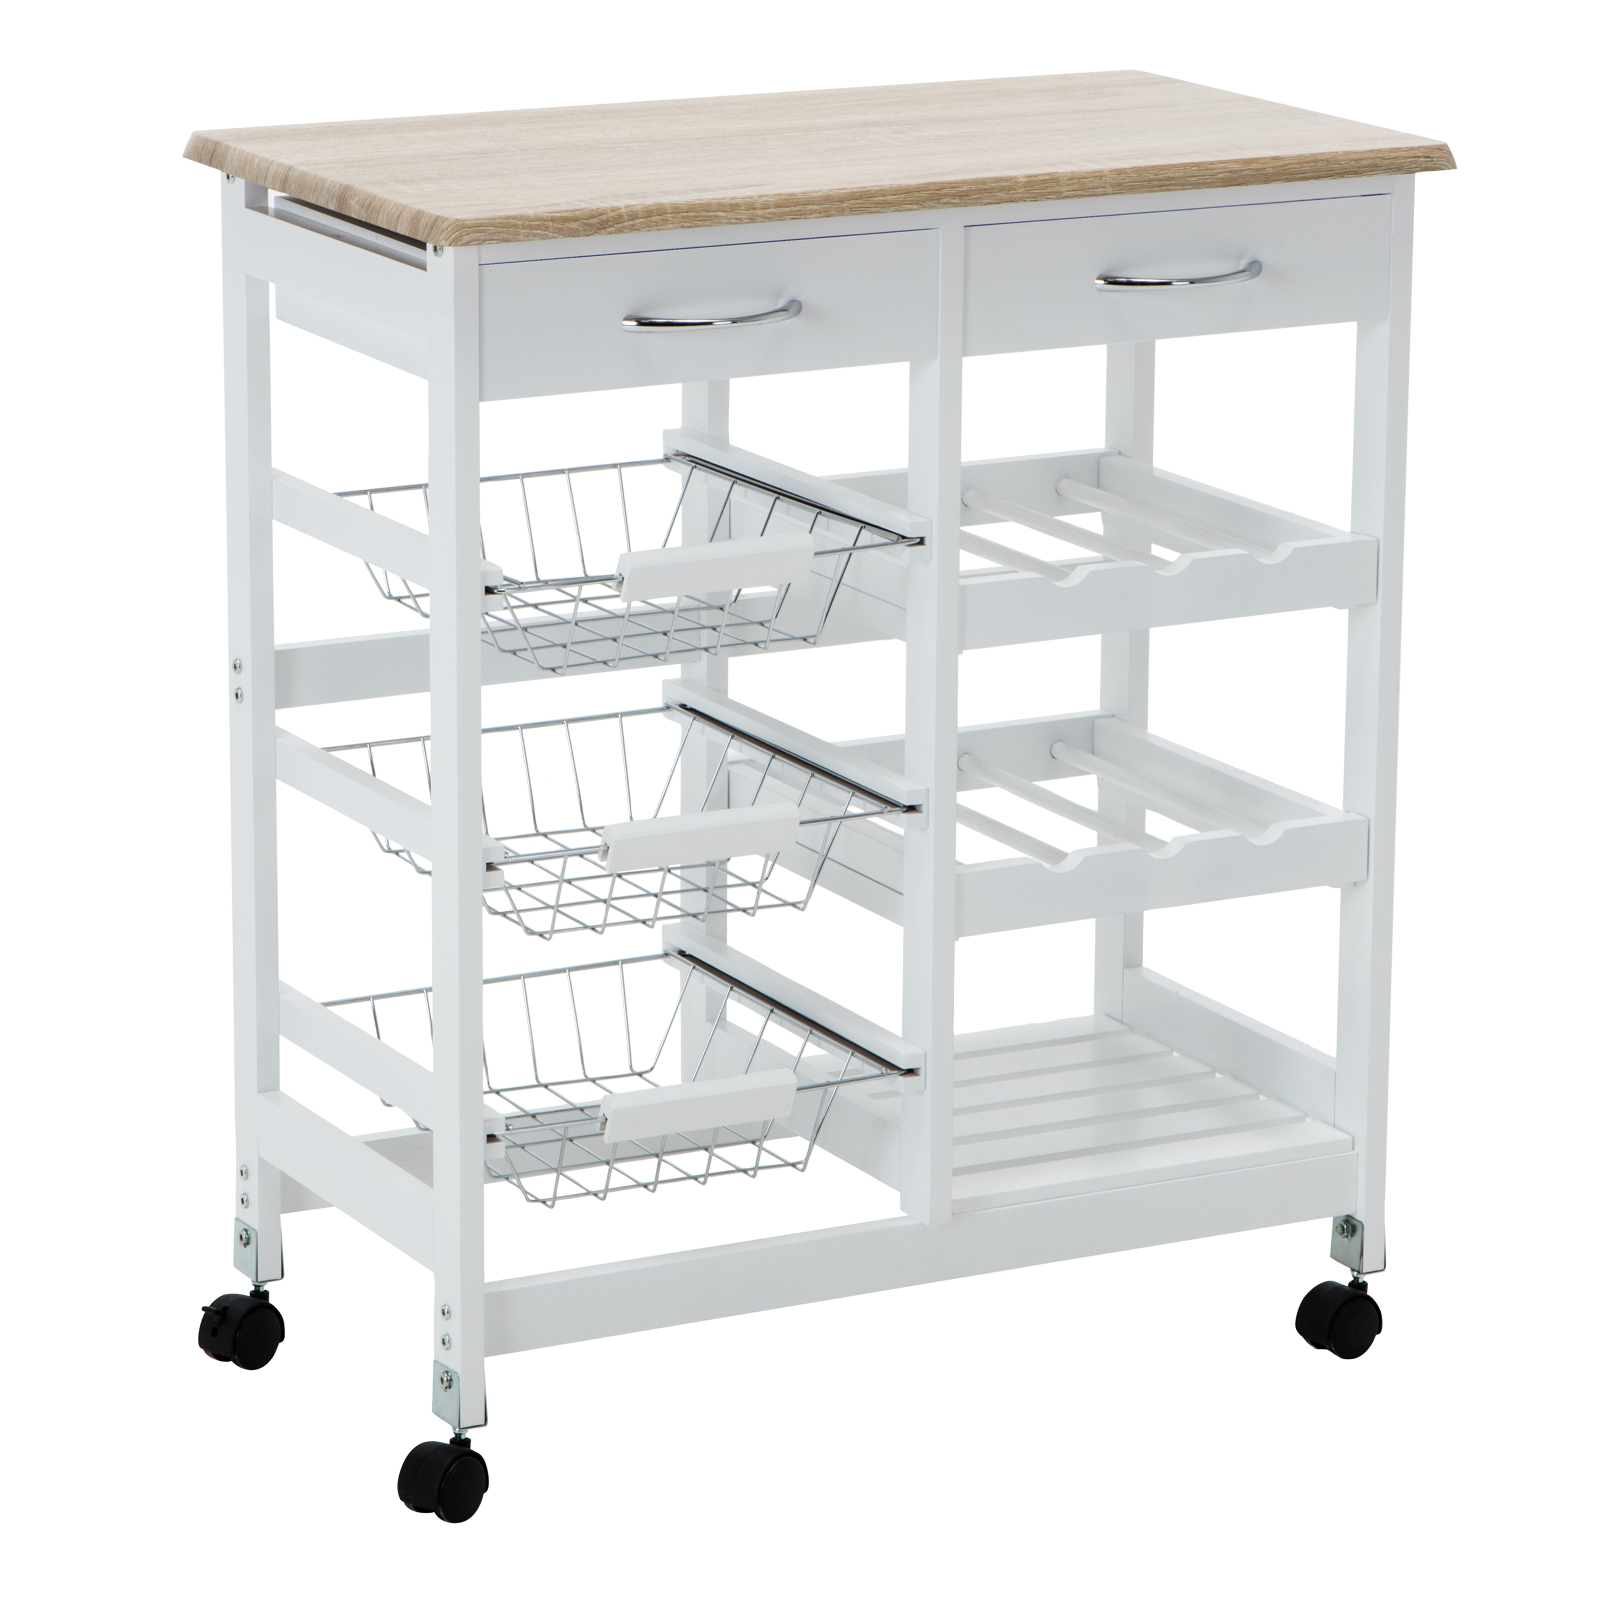 Oak kitchen island cart trolley portable rolling storage for Kitchen island dining table